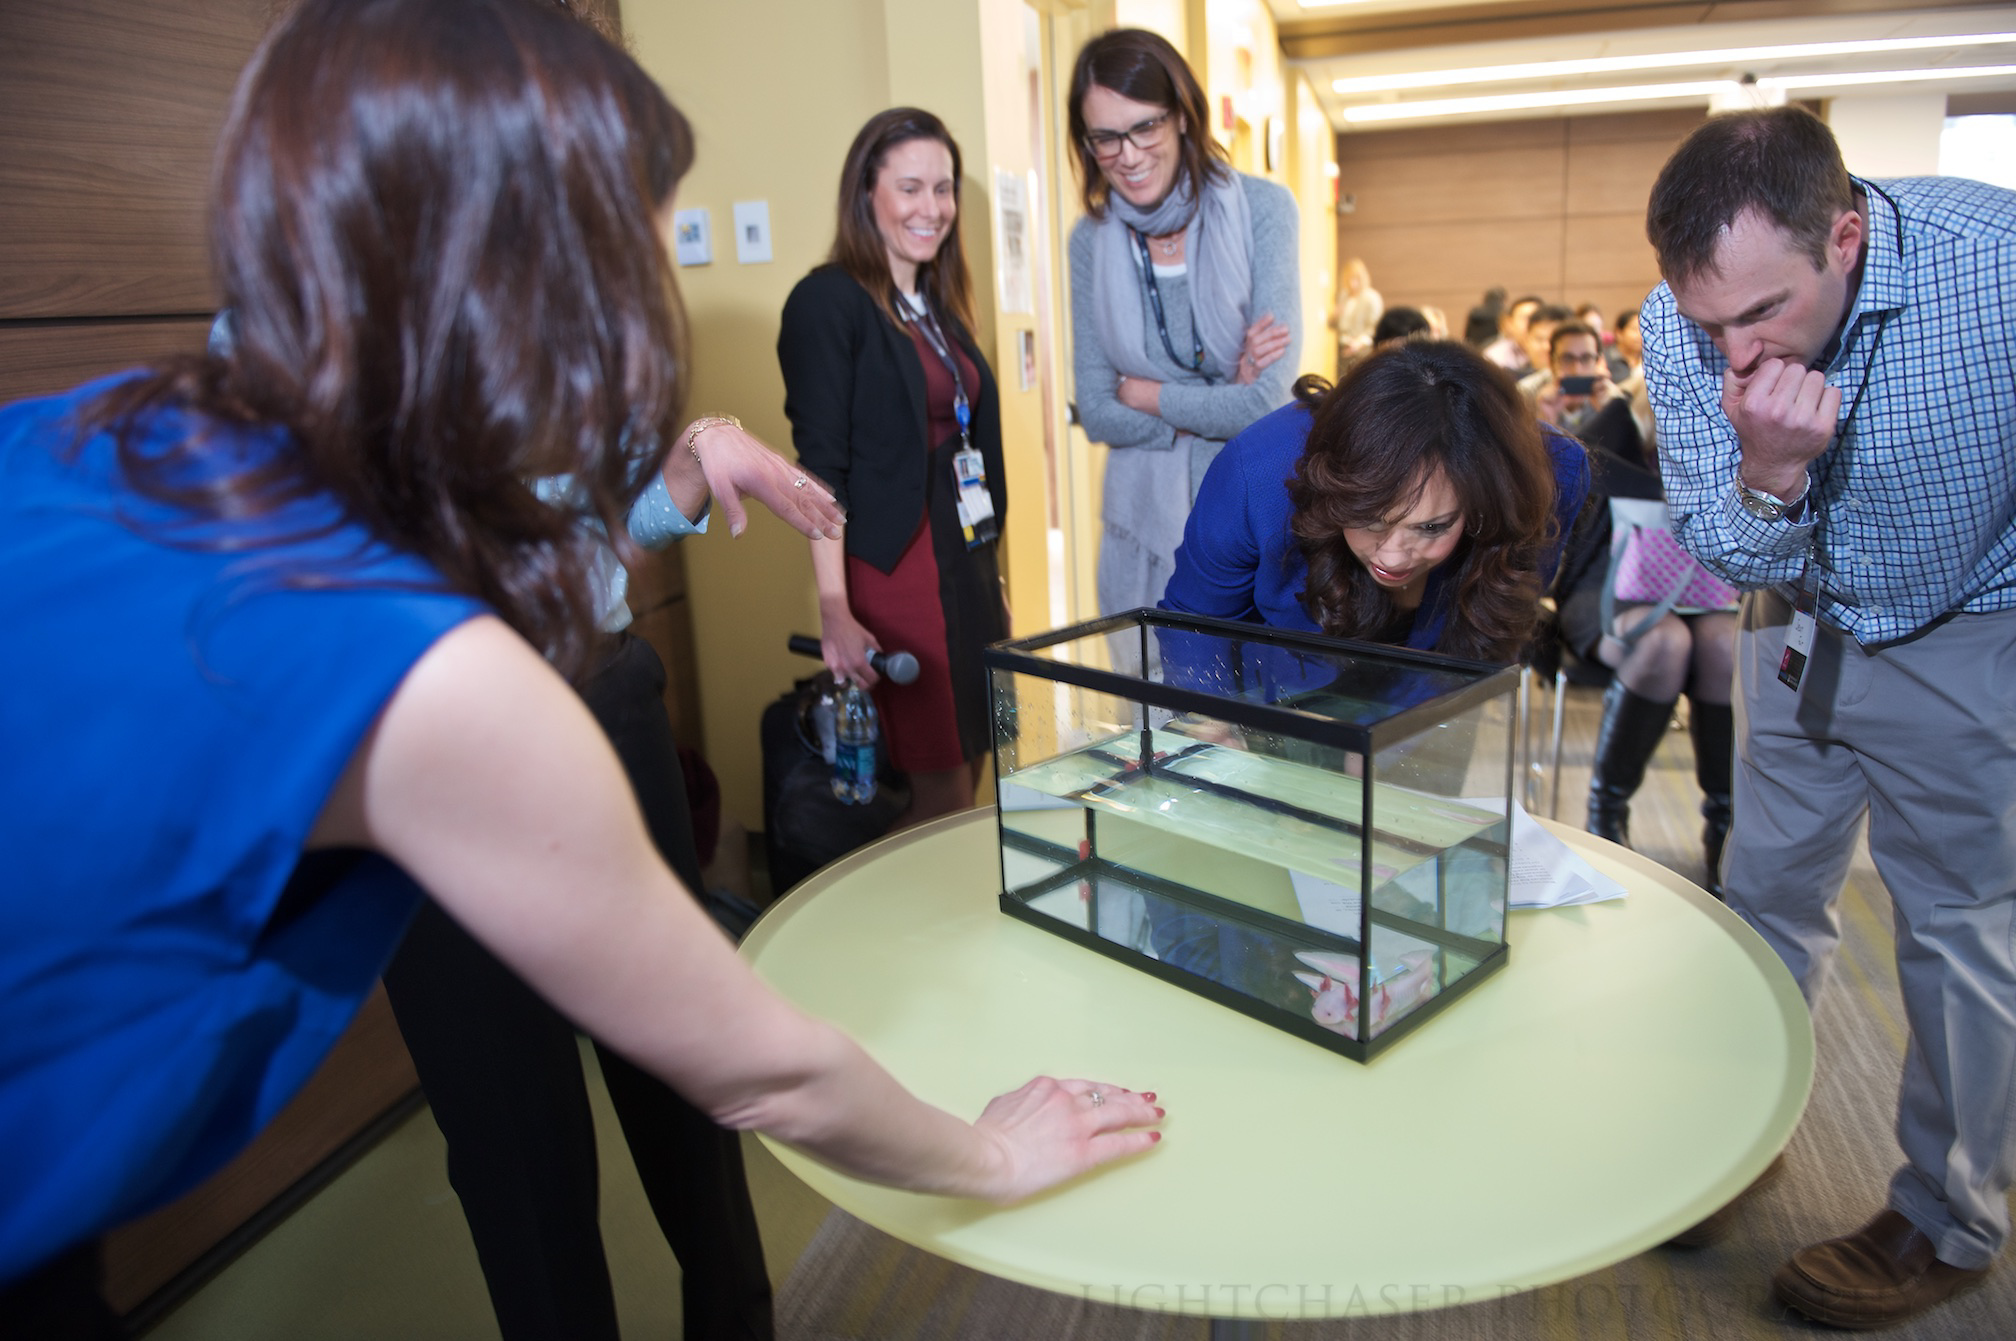 After a panel about regenerative medicine, attendees check out a salamander, which can regrow lost limbs, from Jessica Whited's lab.